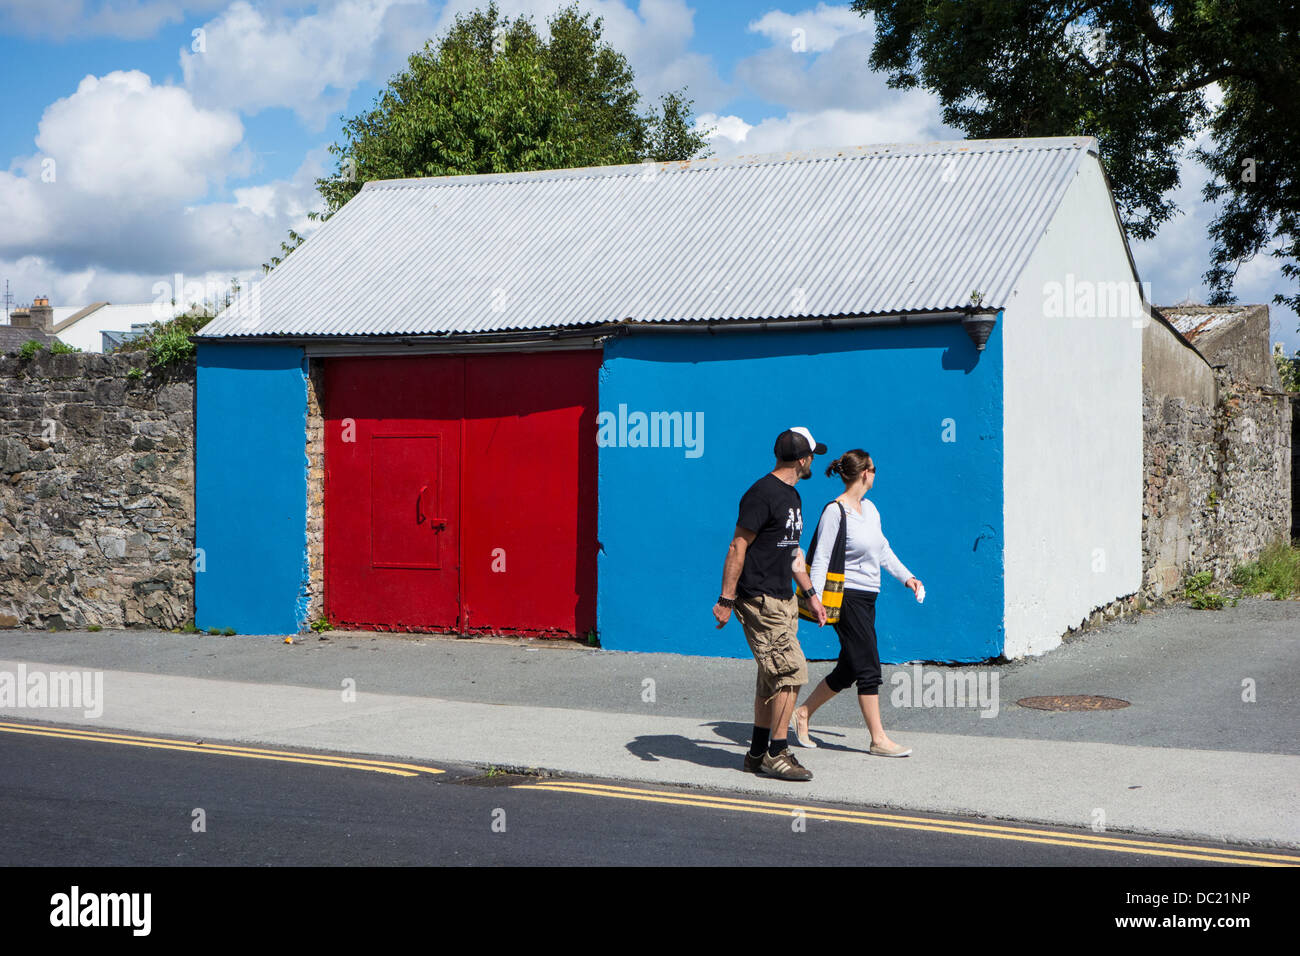 Brightly painted old shed red and blue - outside Dublin, Ireland - Stock Image